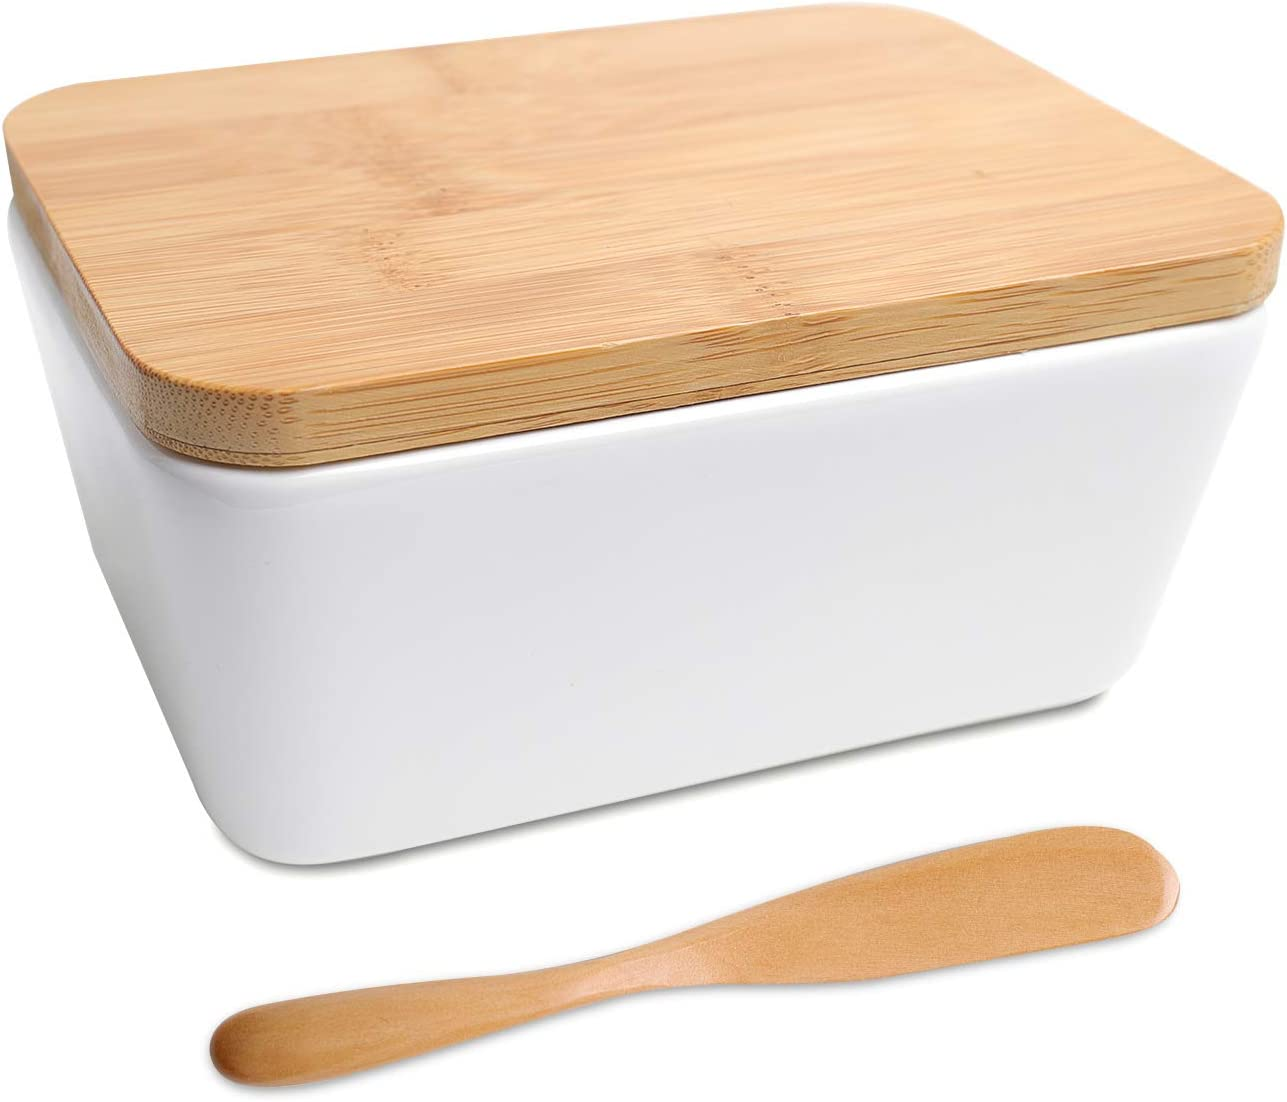 White FIVEAGE Large Butter Dish Airtight Butter Keeper Holds Up to 2 Sticks of Butter Porcelain Container with Bamboo Lid /& Butter Knife